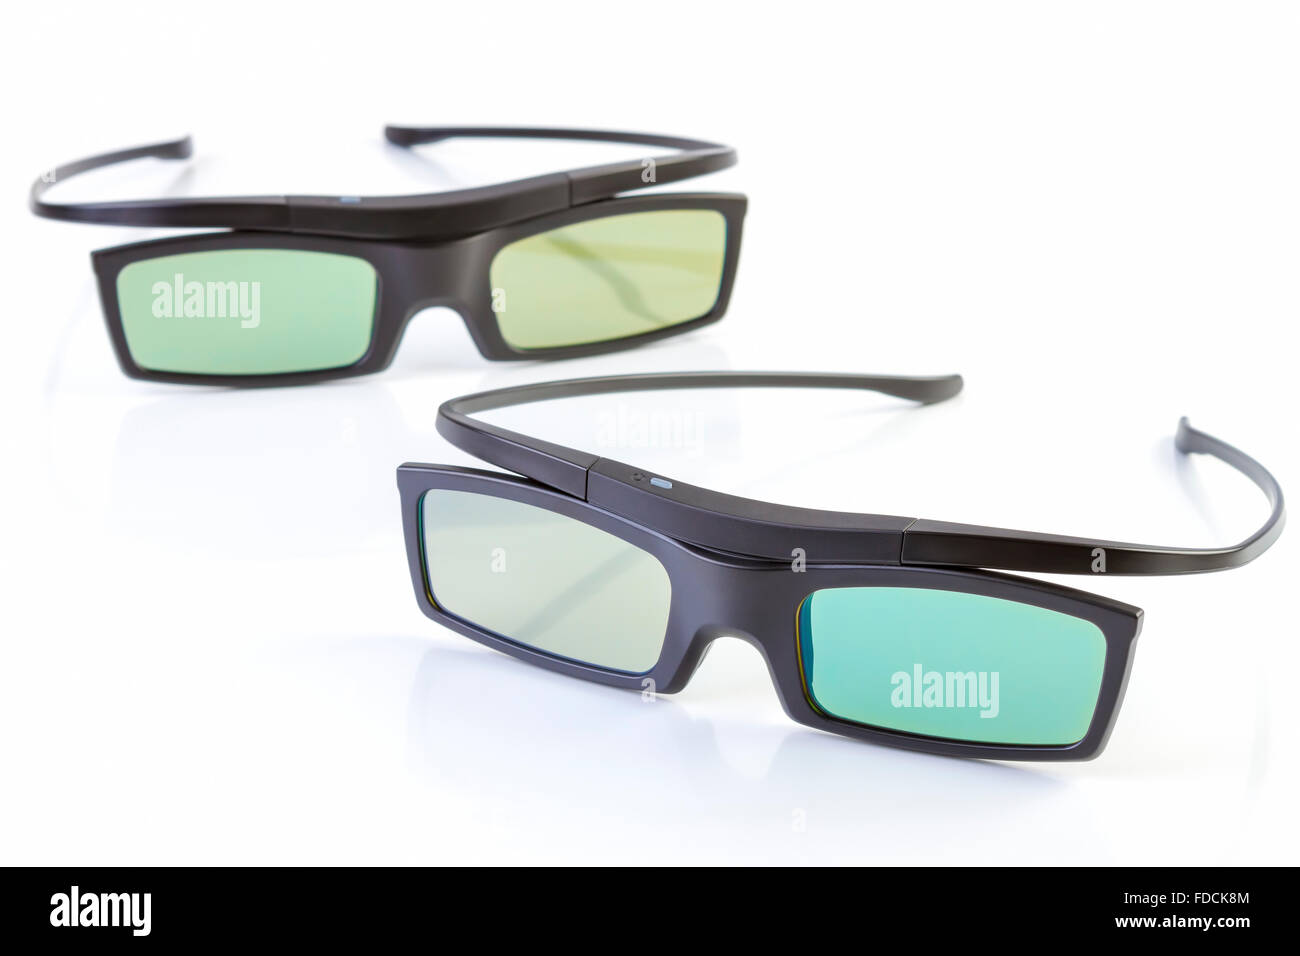 3d glasses isolated on white background - Stock Image